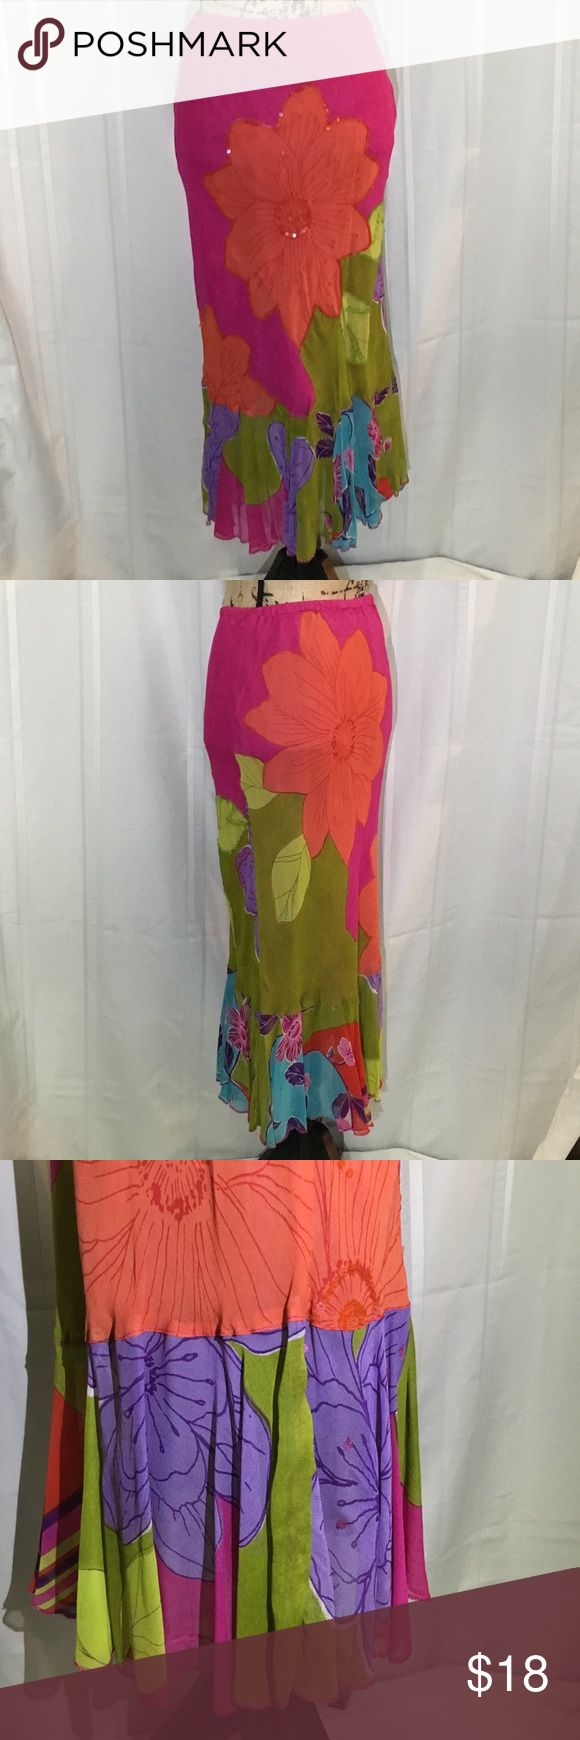 "RENE DERHY Pink/Green Floral Maxi Fluted Skirt Rene DERHY is known for vintage Boho style. Sequined Skirt has elastic waist and wide gathered ruffle hem. Full lined. Sequins in good shape except as shown. Length 33"", waist 14"" flat. Rene Derhy Skirts Maxi"